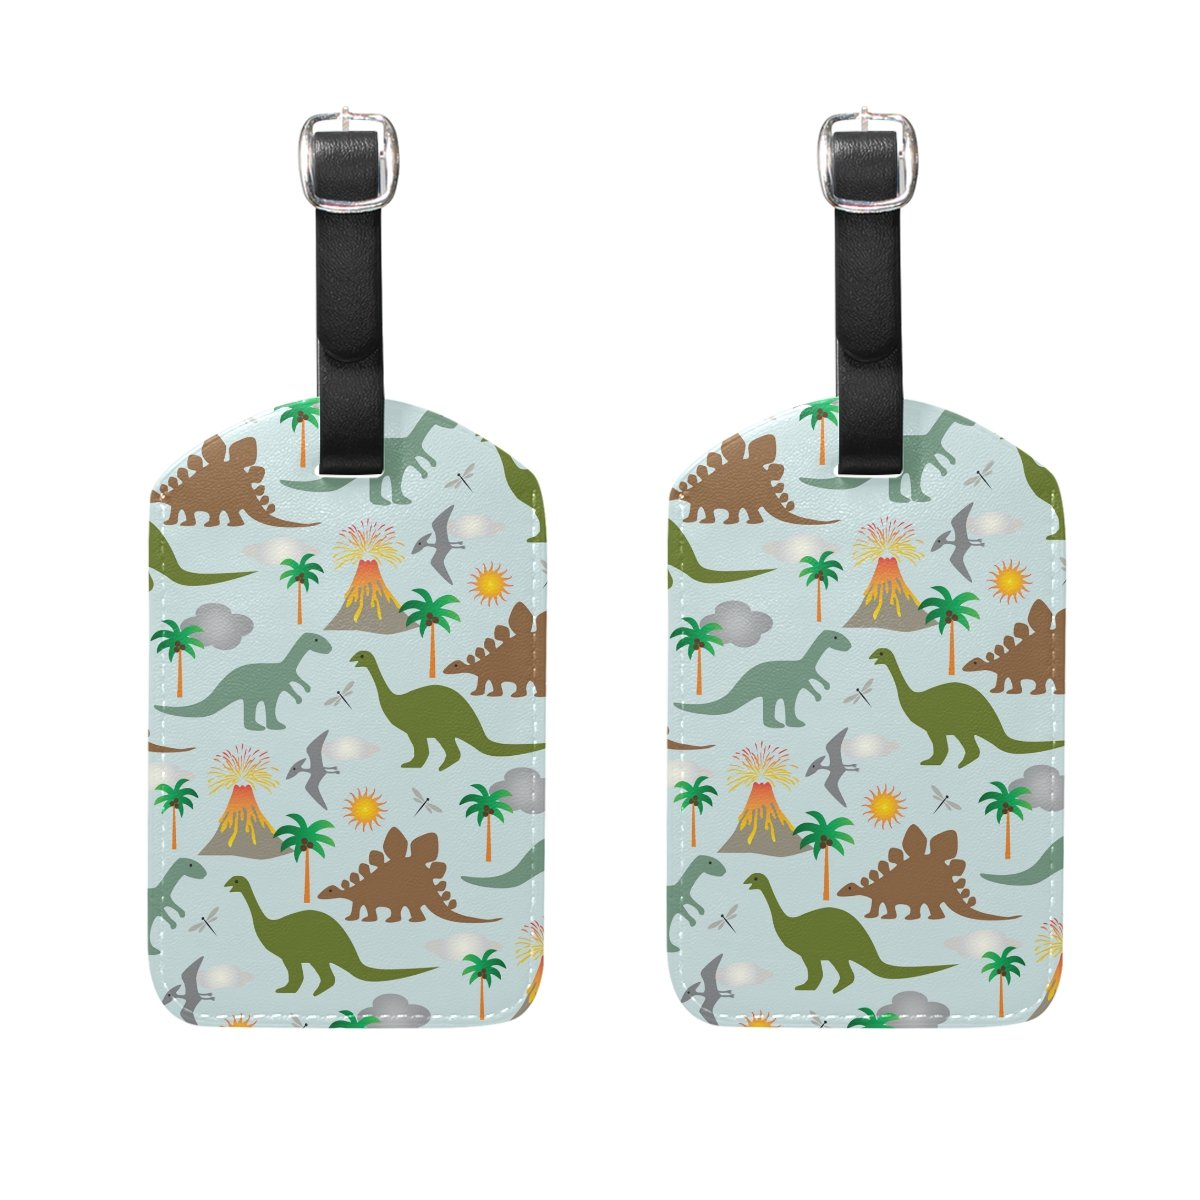 COOSUN Dinosaur Scene Luggage Tags Travel Labels Tag Name Card Holder for Baggage Suitcase Bag Backpacks, 2 PCS